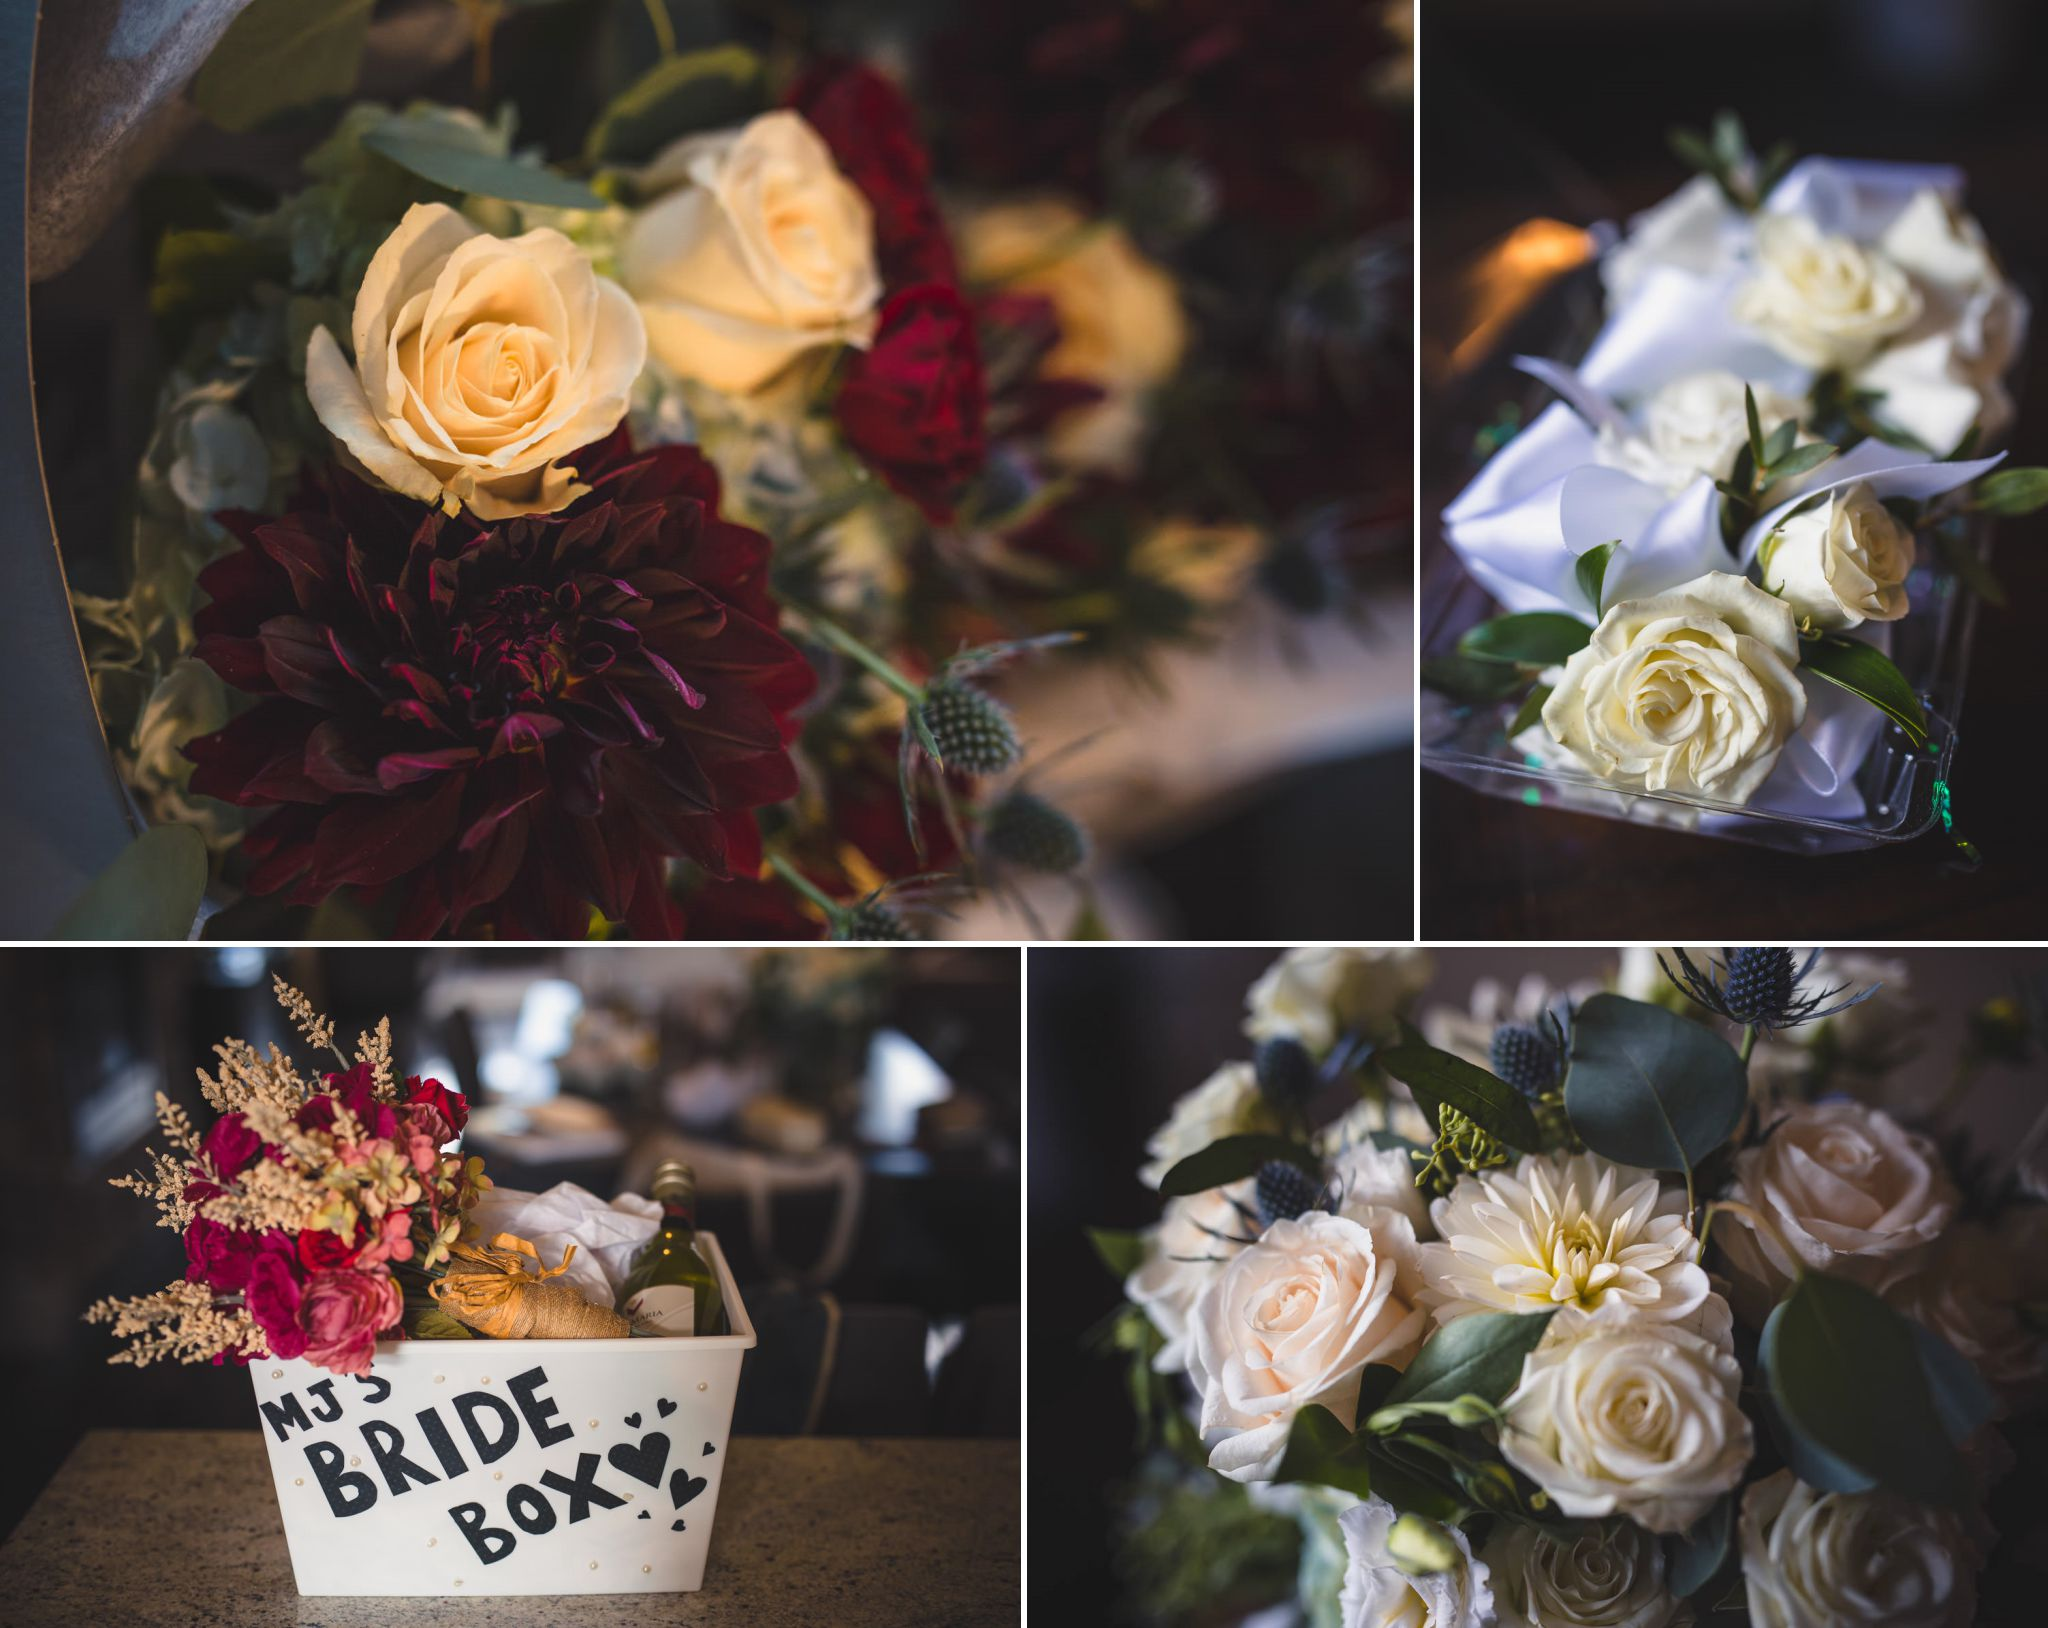 Collage of bridal flowers